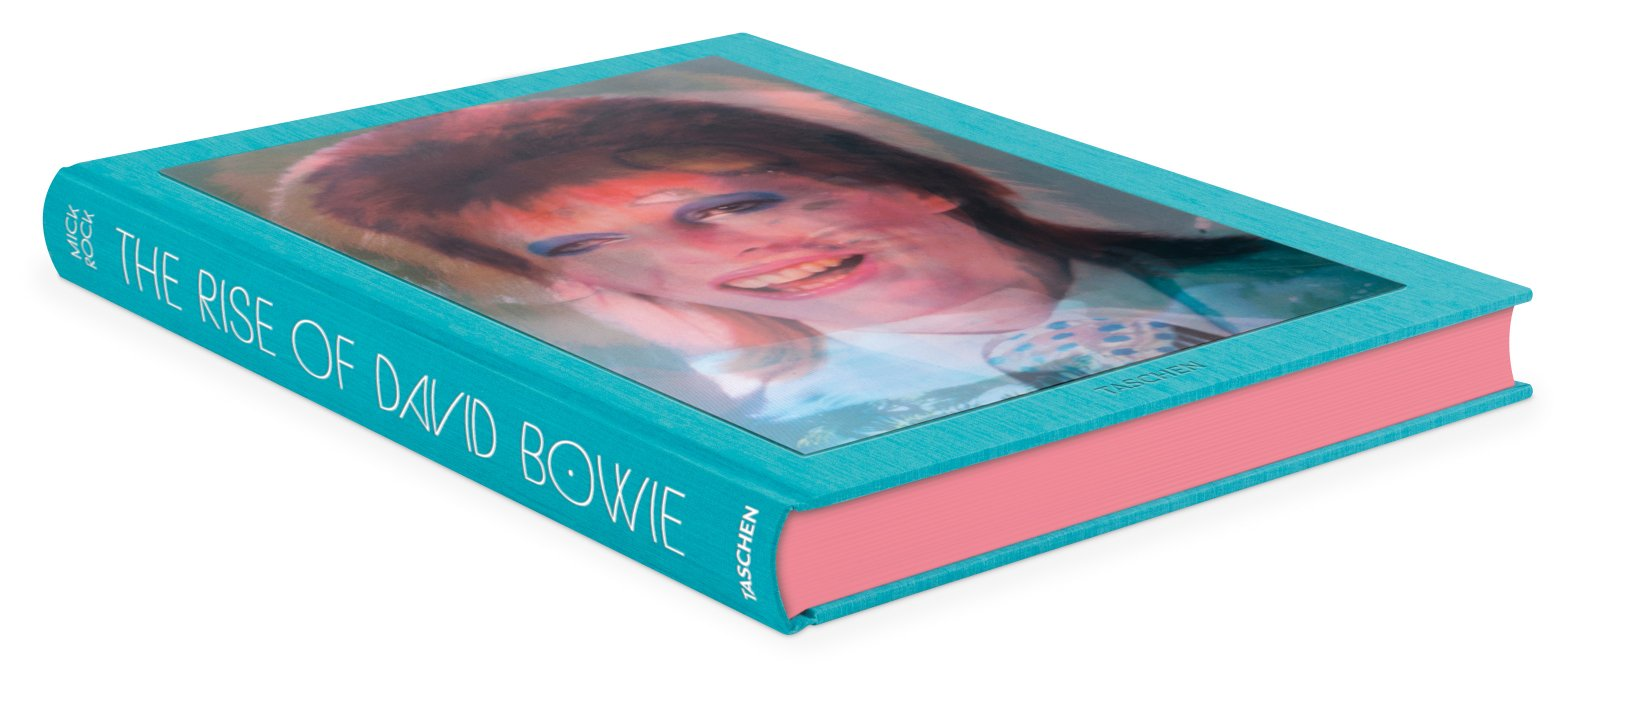 a journal of musical thingsthis new david bowie coffee table book